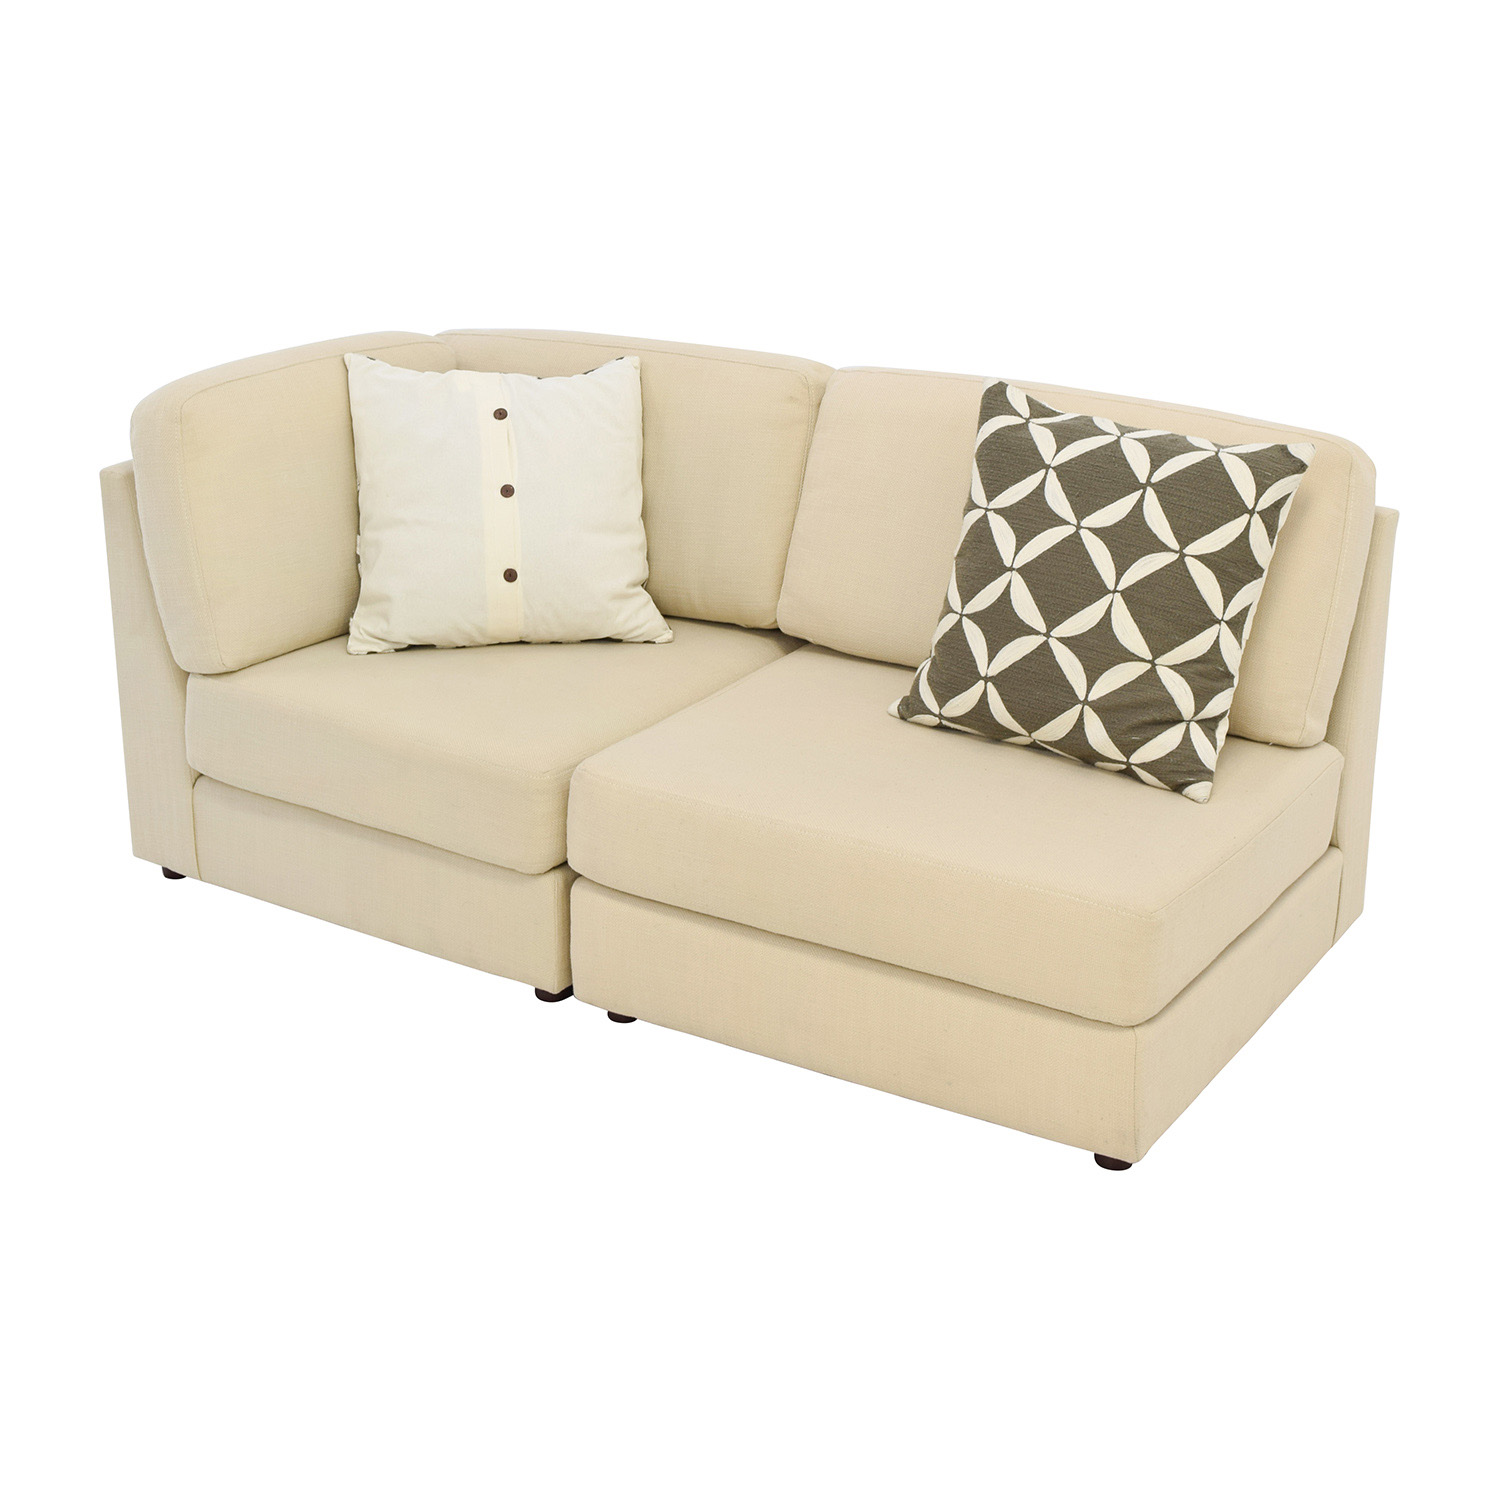 Cream chaise sofa cream chenille reversible sofa chaise sectional free shipping thesofa - Sofa gratis ...